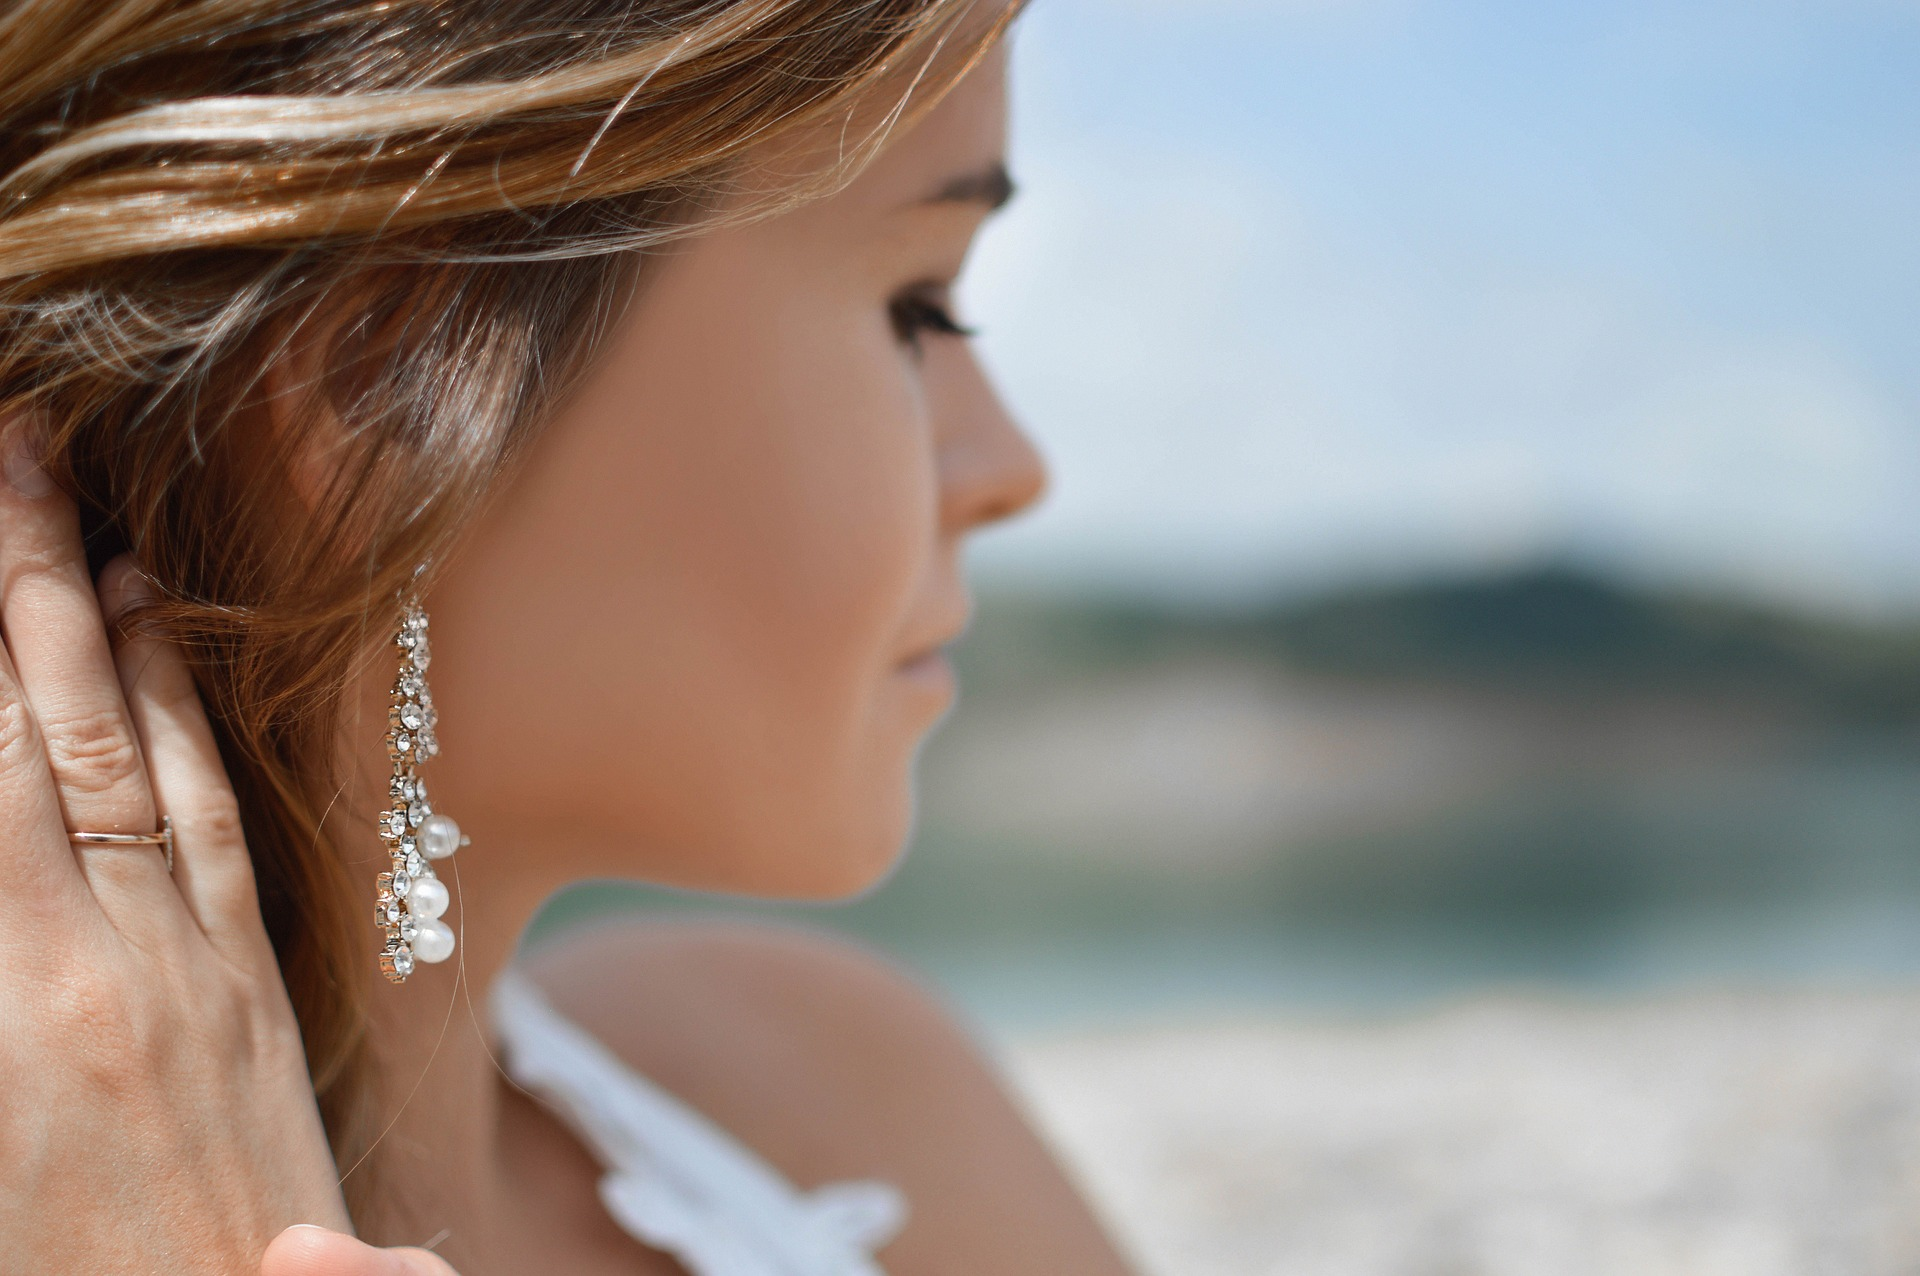 earrings-2593350_1920